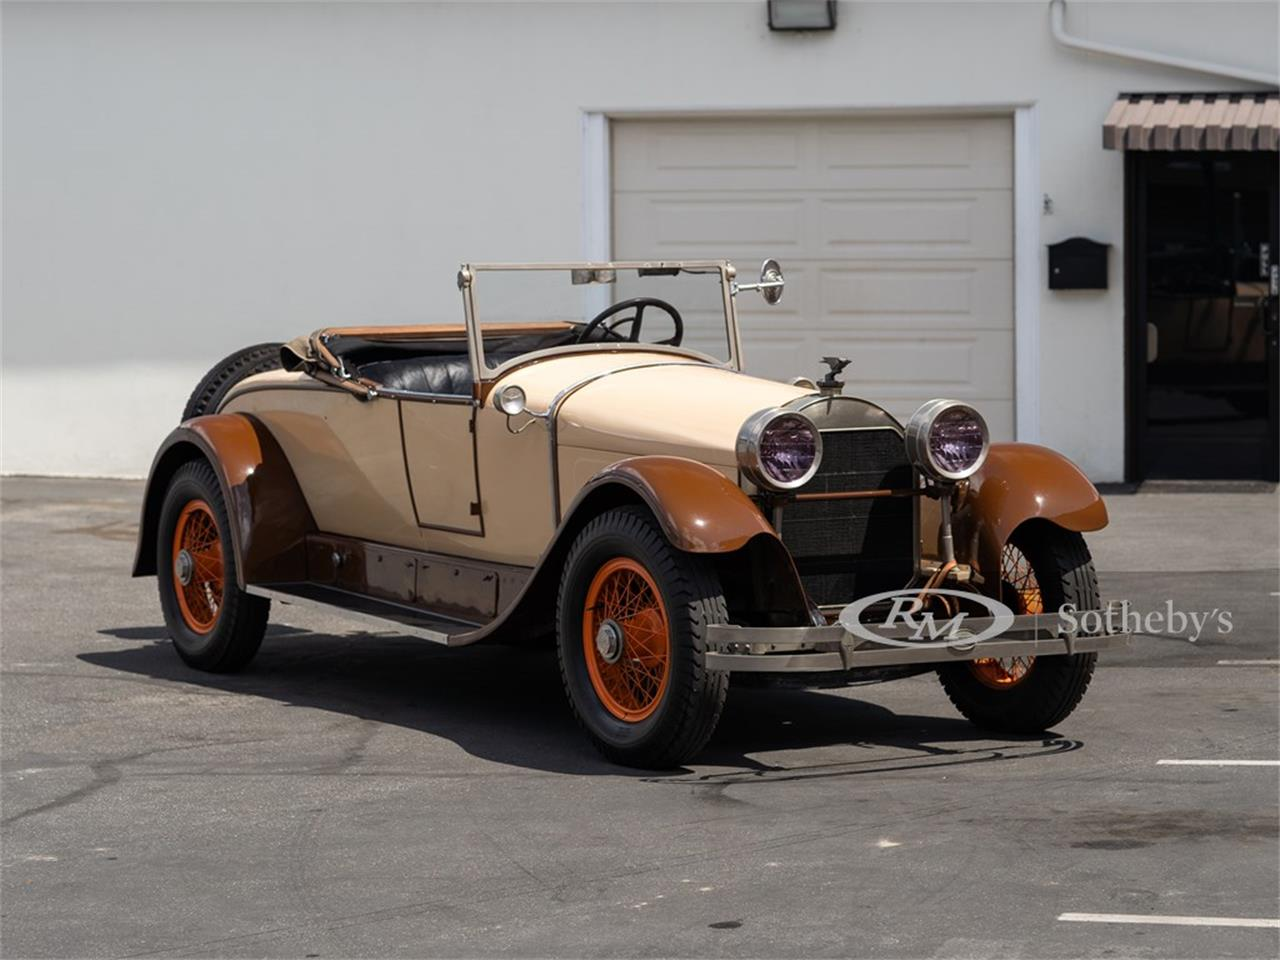 1919 Locomobile Model 48 (CC-1382517) for sale in Online, California